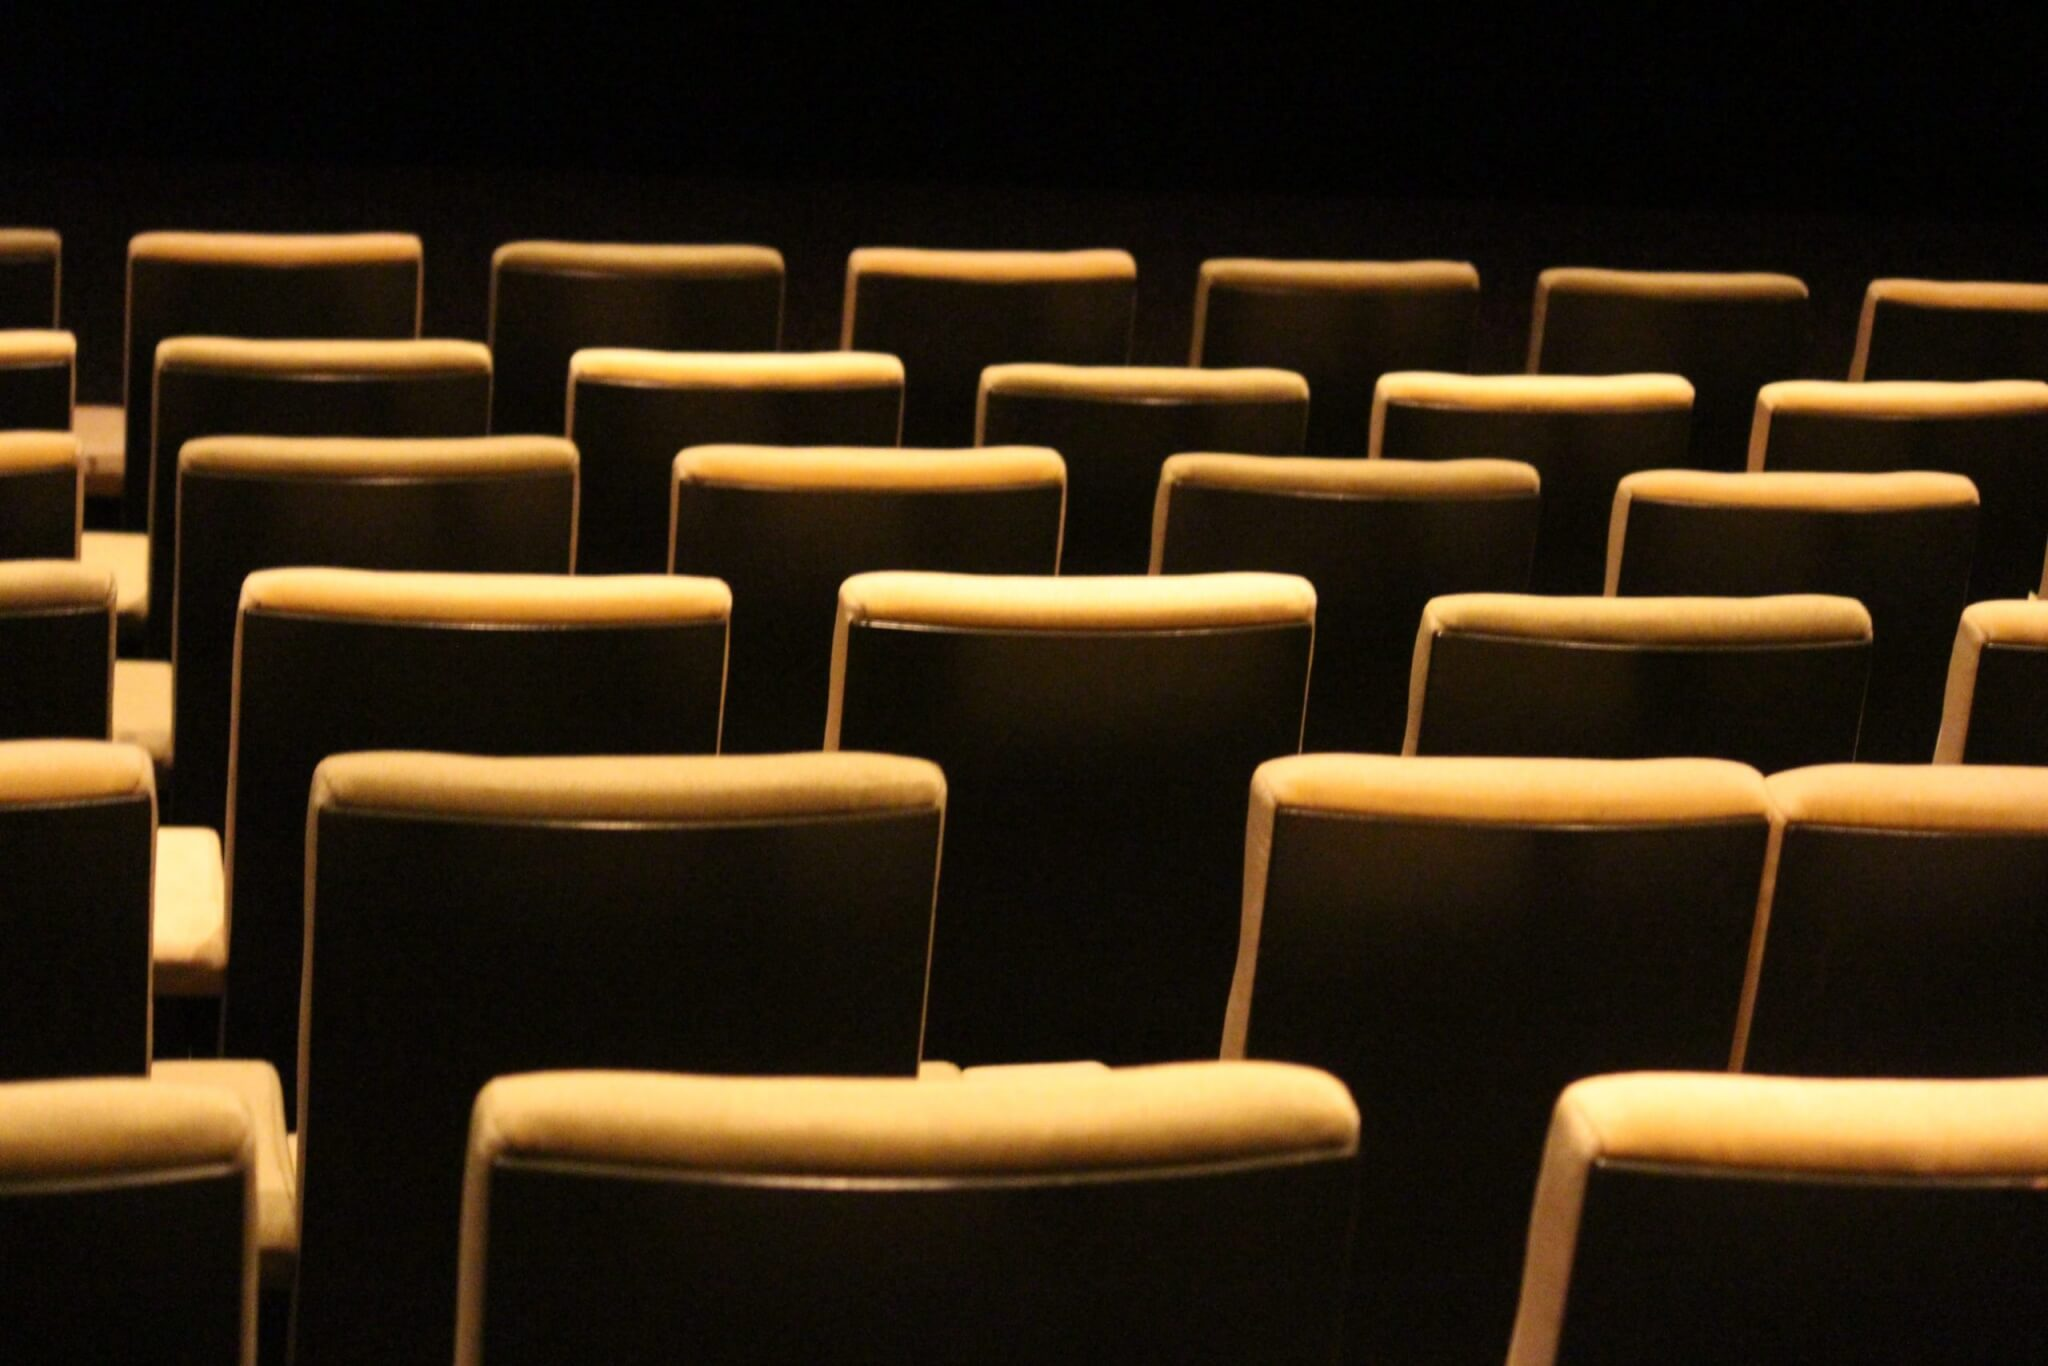 A movie theater chain delights movie-goers by addressing key unmet needs Case Study